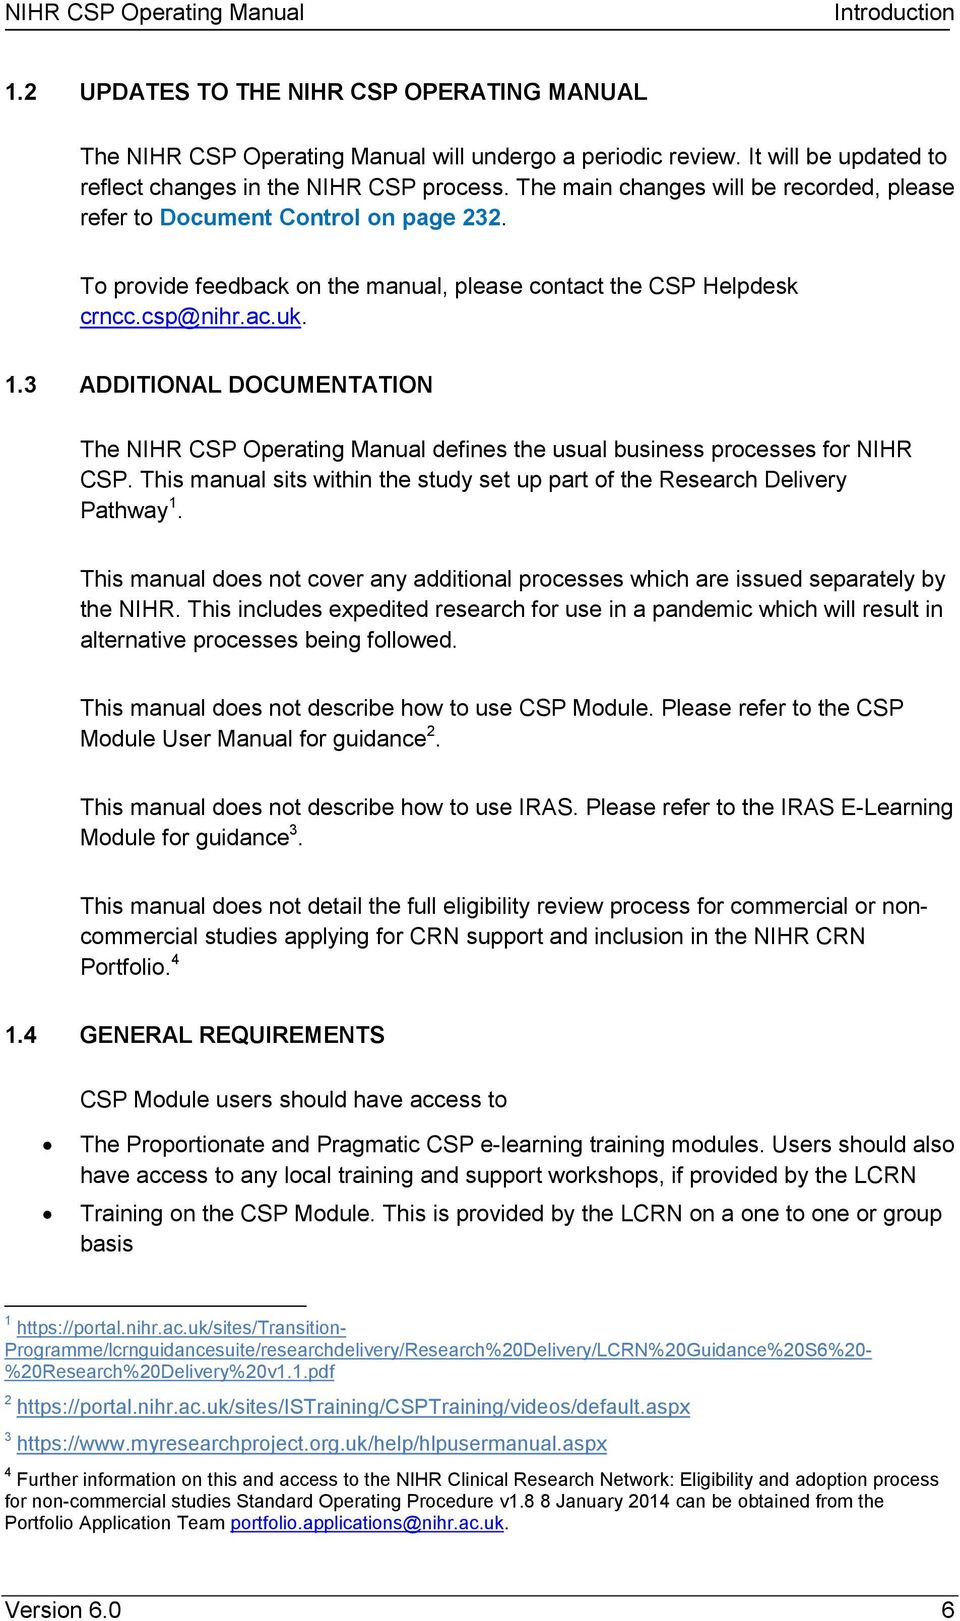 To provide feedback on the manual, please contact the CSP Helpdesk crncc.csp@nihr.ac.uk. 1.3 ADDITIONAL DOCUMENTATION The NIHR CSP Operating Manual defines the usual business processes for NIHR CSP.